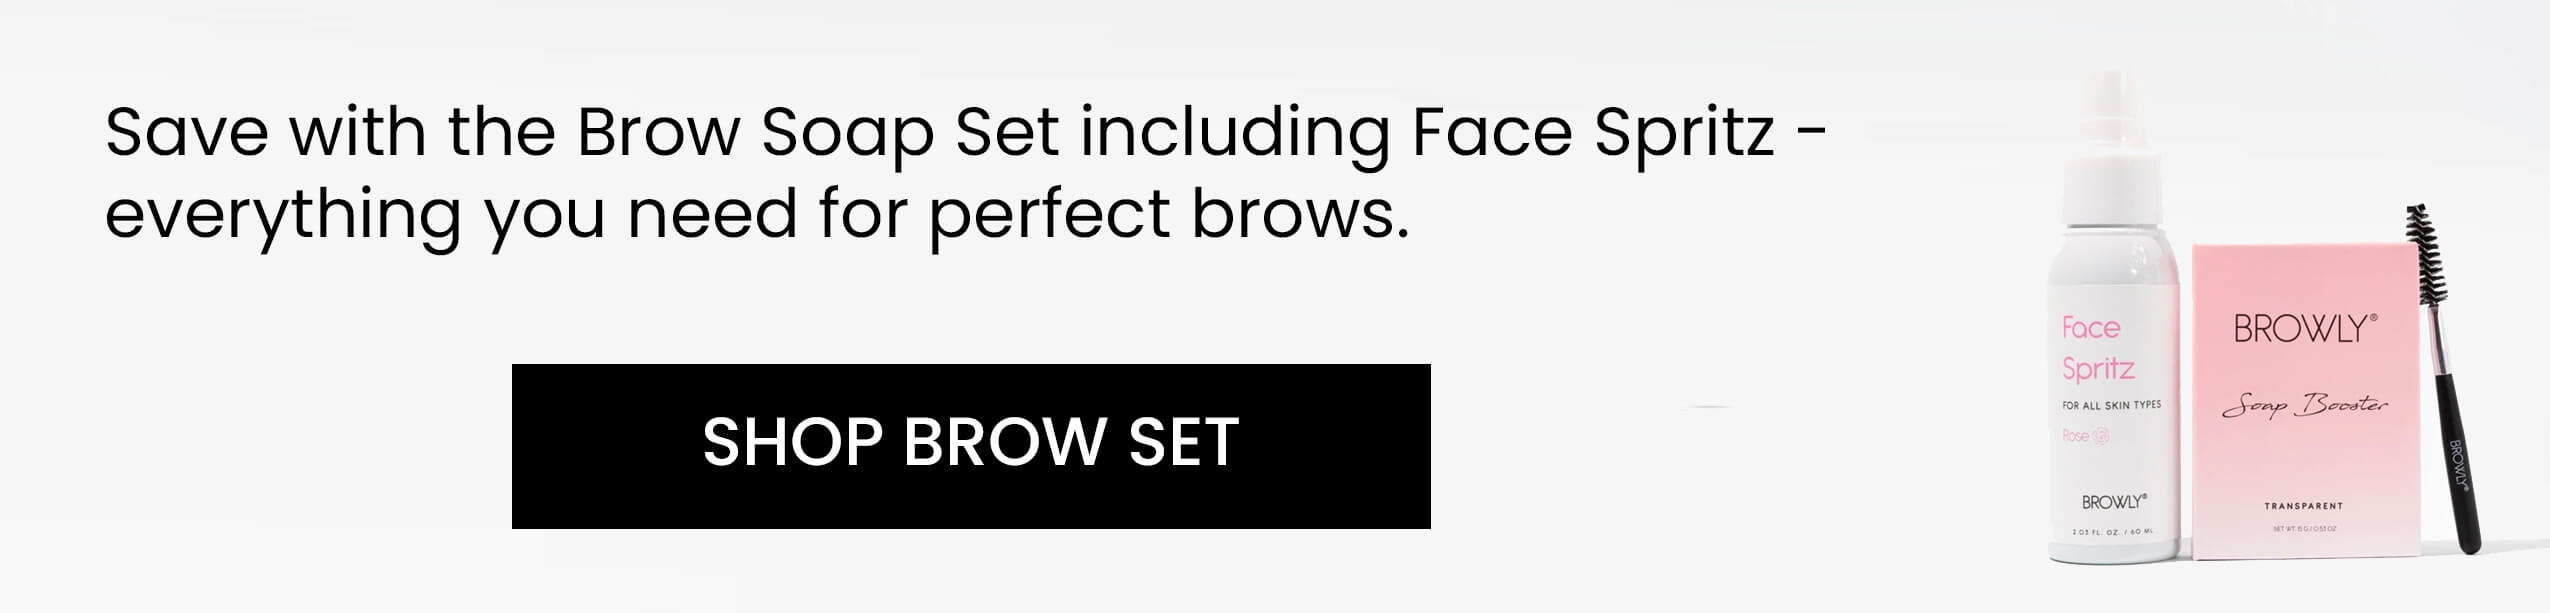 Upgrade to the Brow Soap Set in transparent